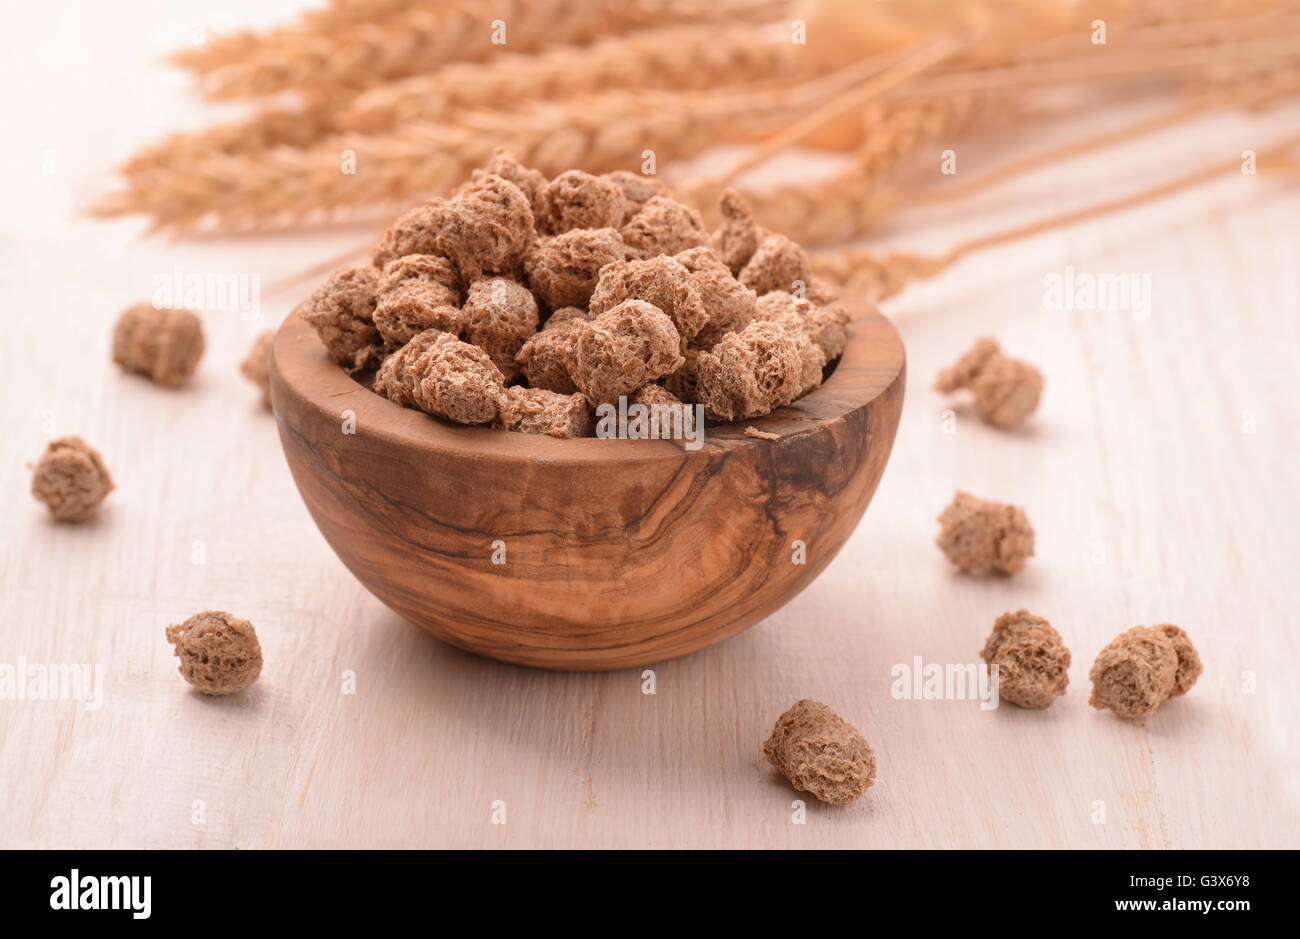 Bowl full of wheat bran and wheat ears - Stock Image